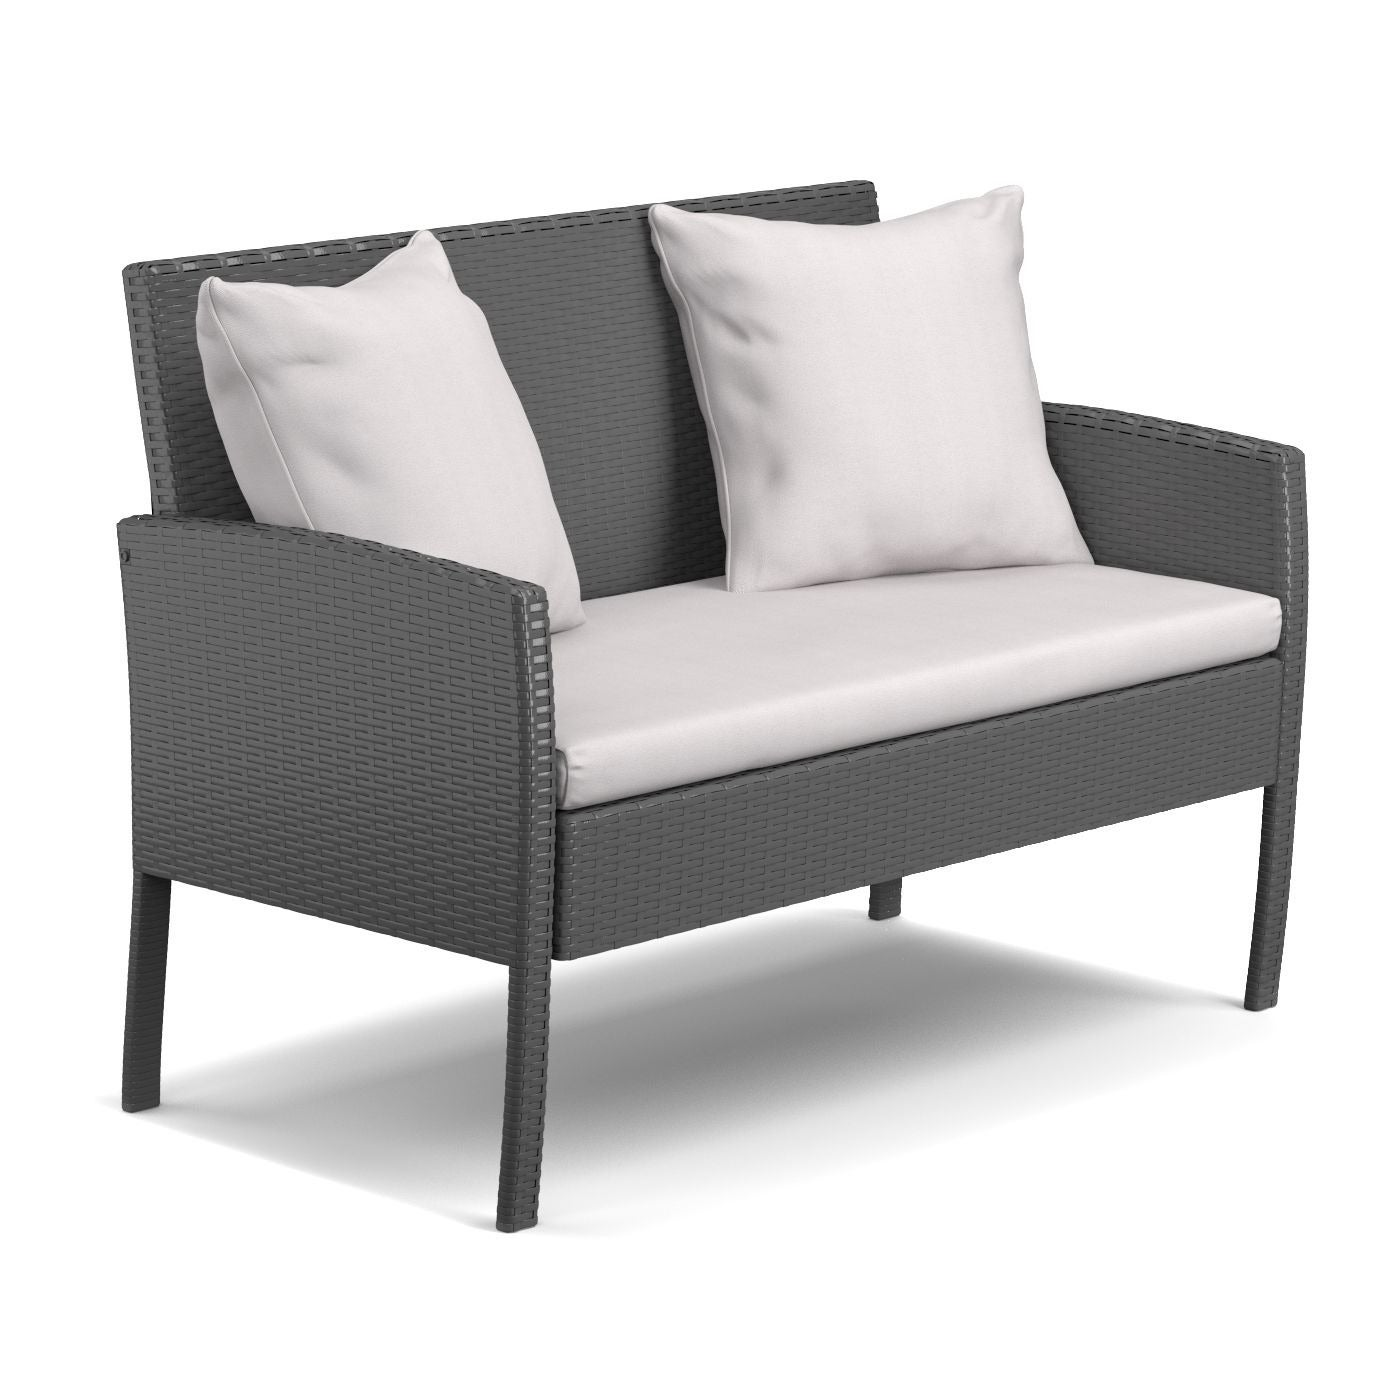 patio p and seat sofas home outdoors lanai depot loveseat furniture en loveseats love the canada outdoor breeze categories